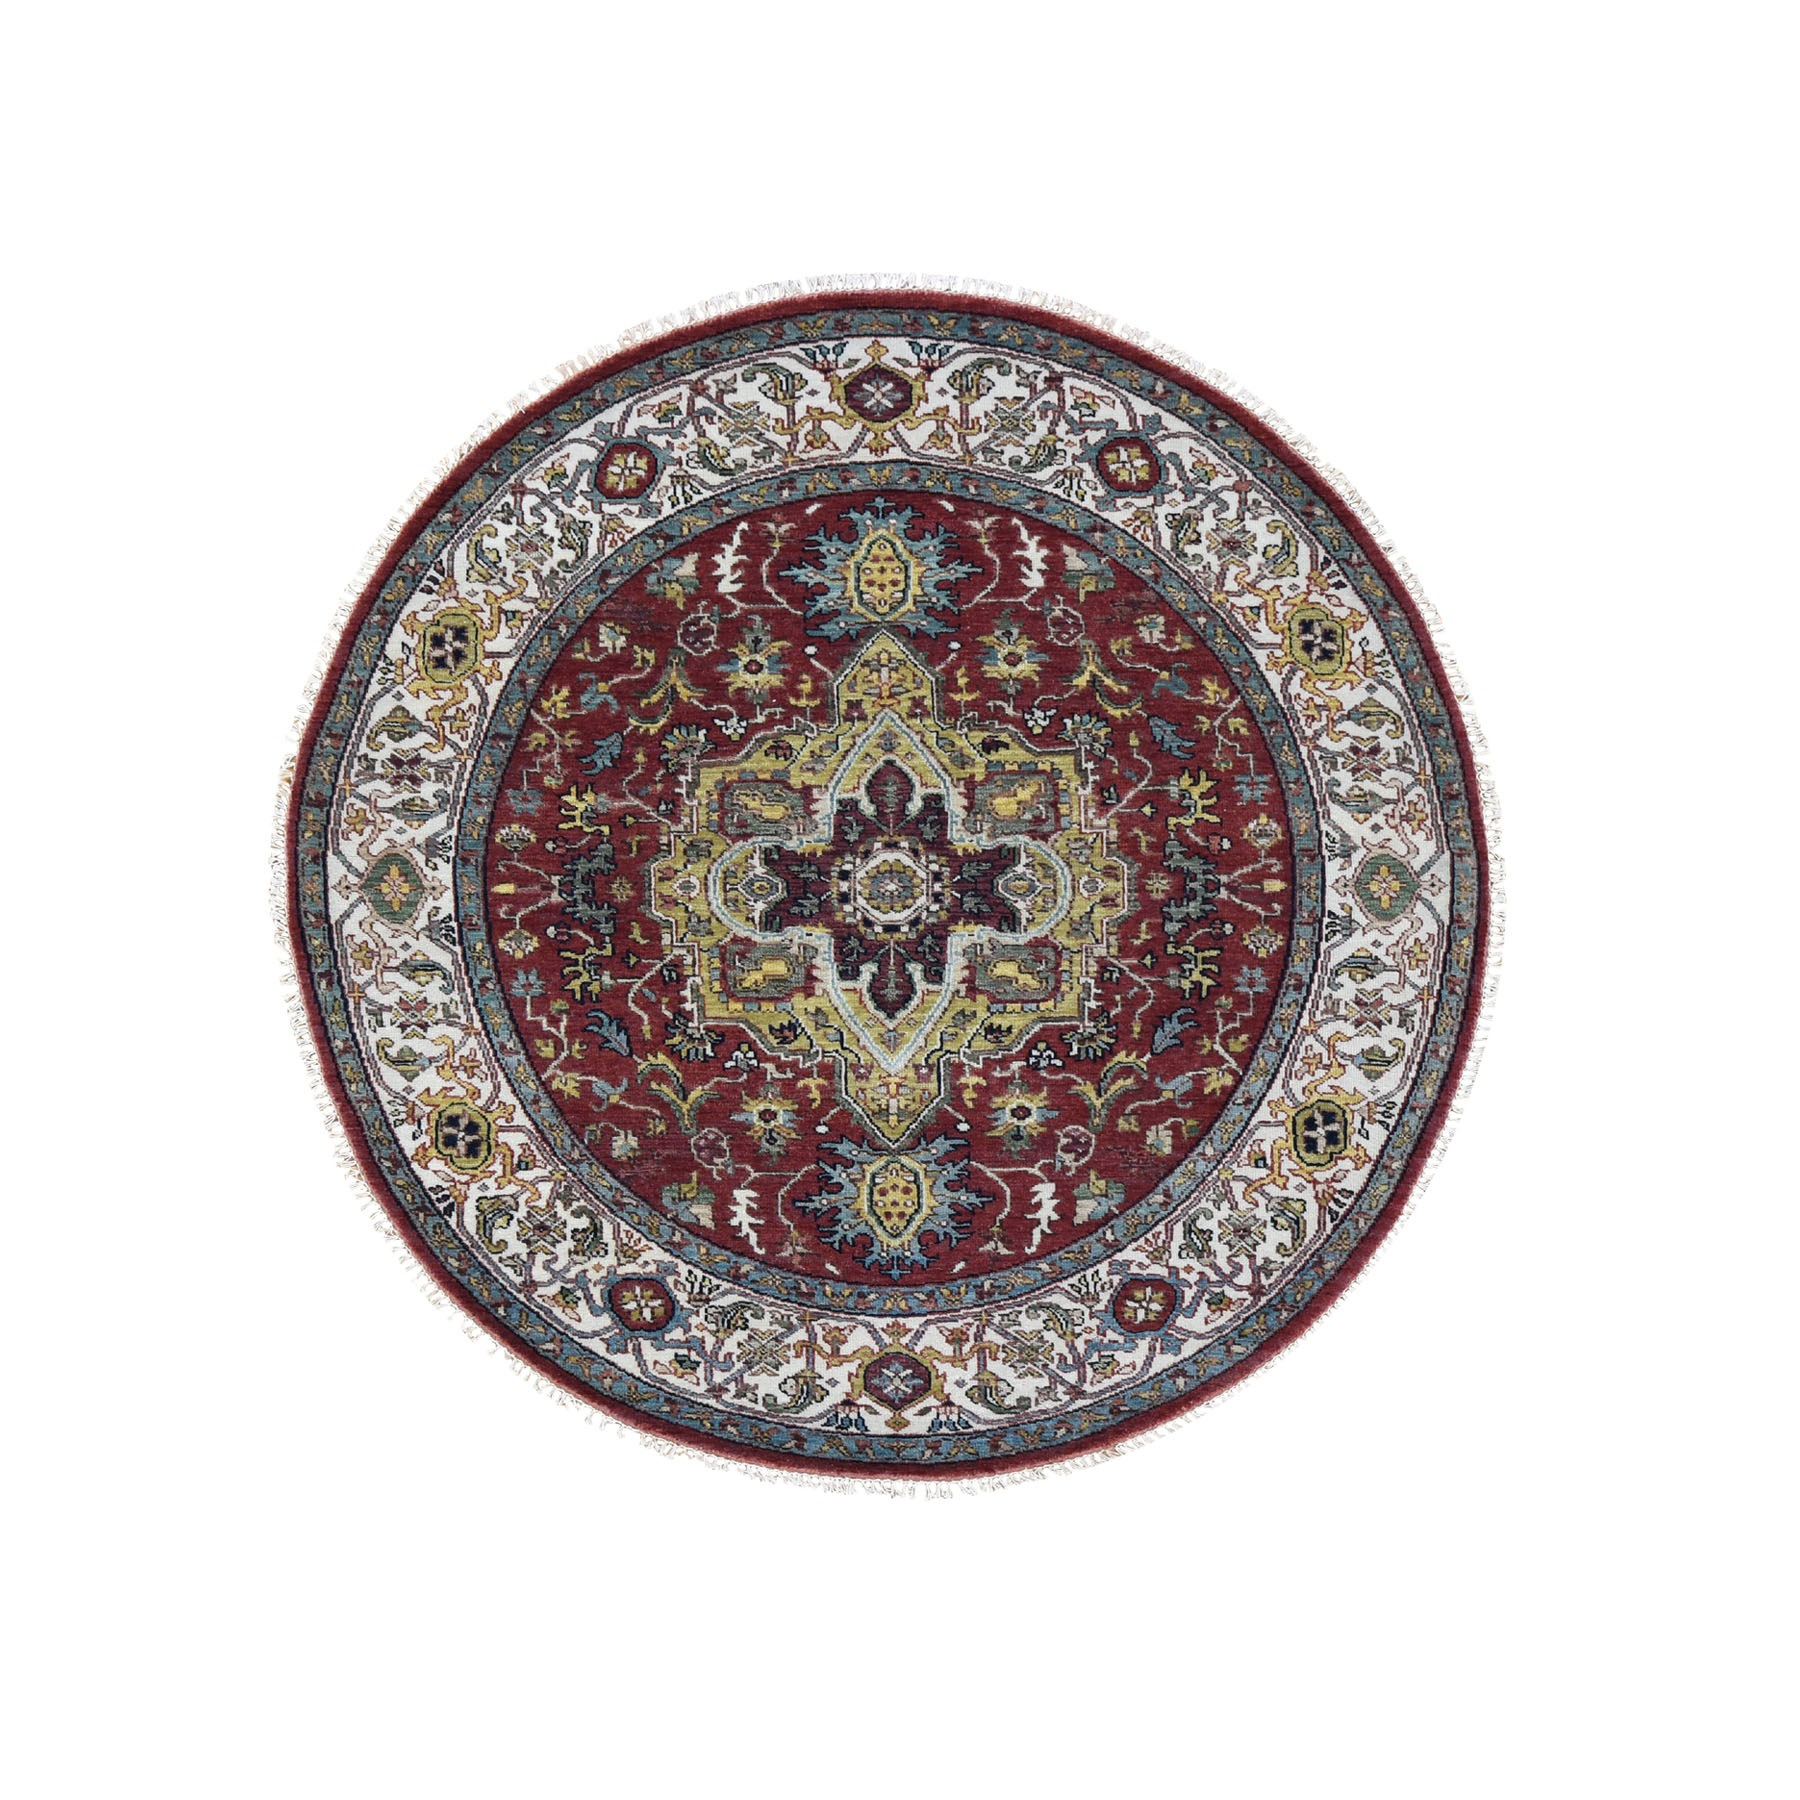 6'x6' Round Red Heriz Revival Pure Wool Hand Knotted Oriental Rug